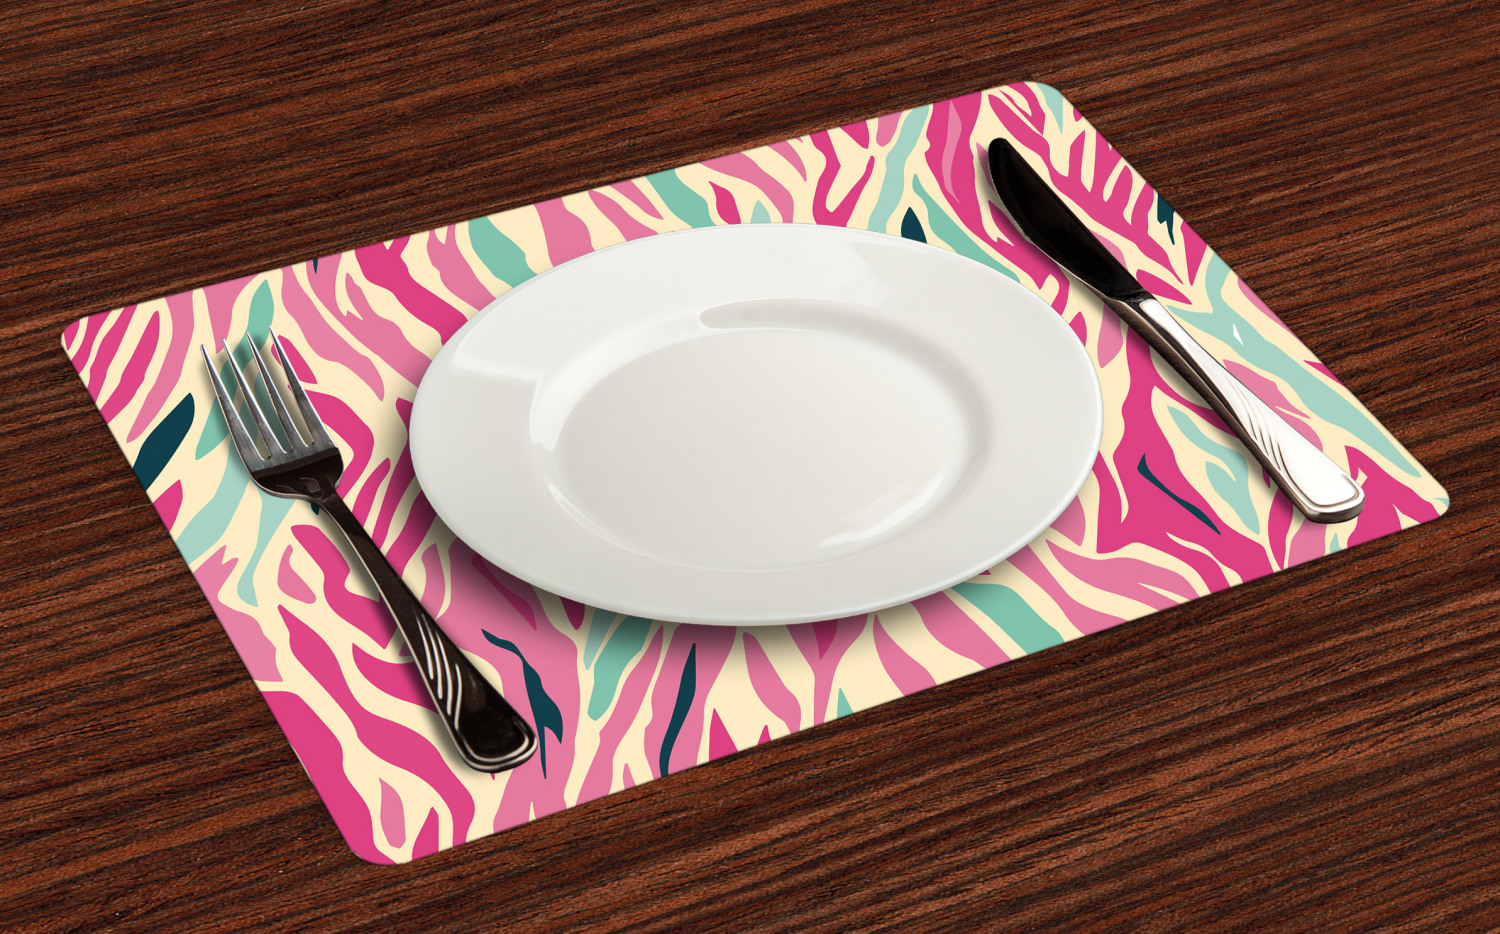 Pink Zebra Placemats Set Of 4 By Ambesonne Washable Fabric Place Mats Ebay